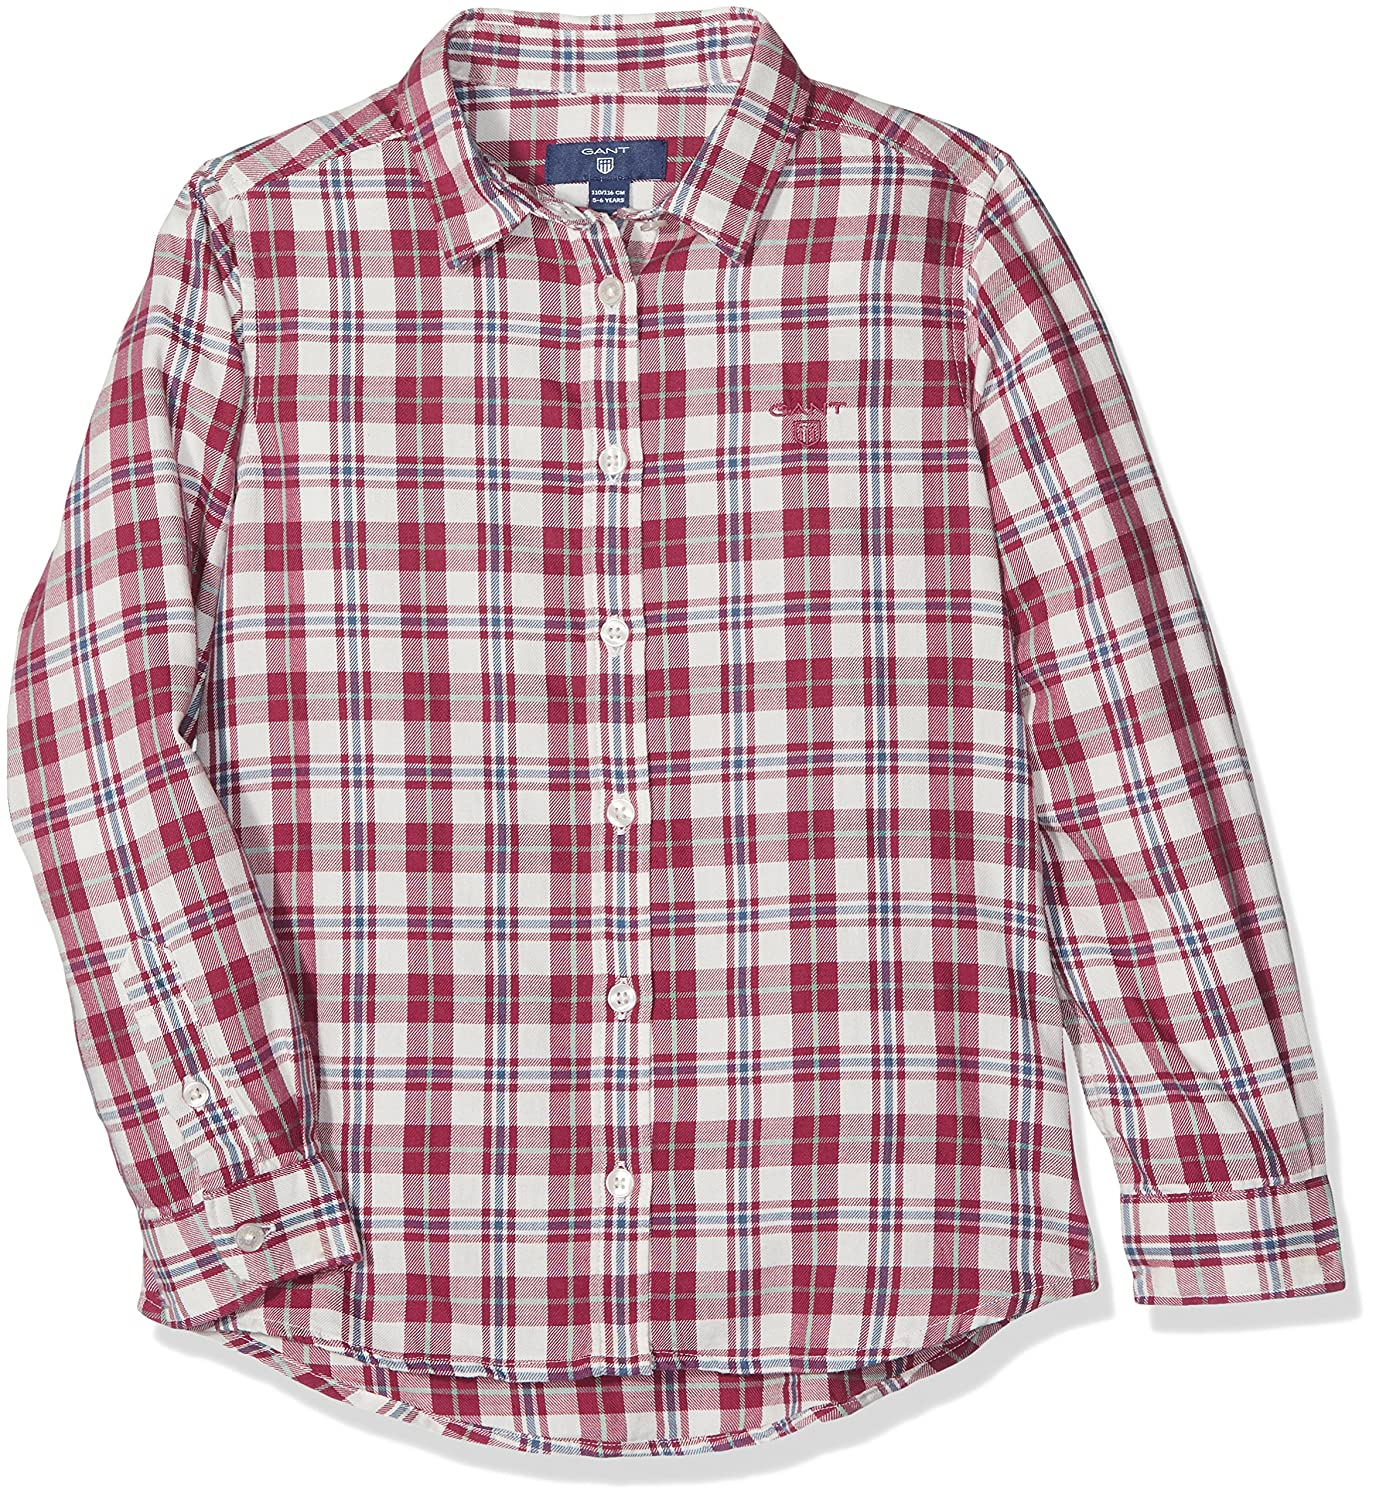 Gant Girl's Check Flannel Shirt Blouse 630348